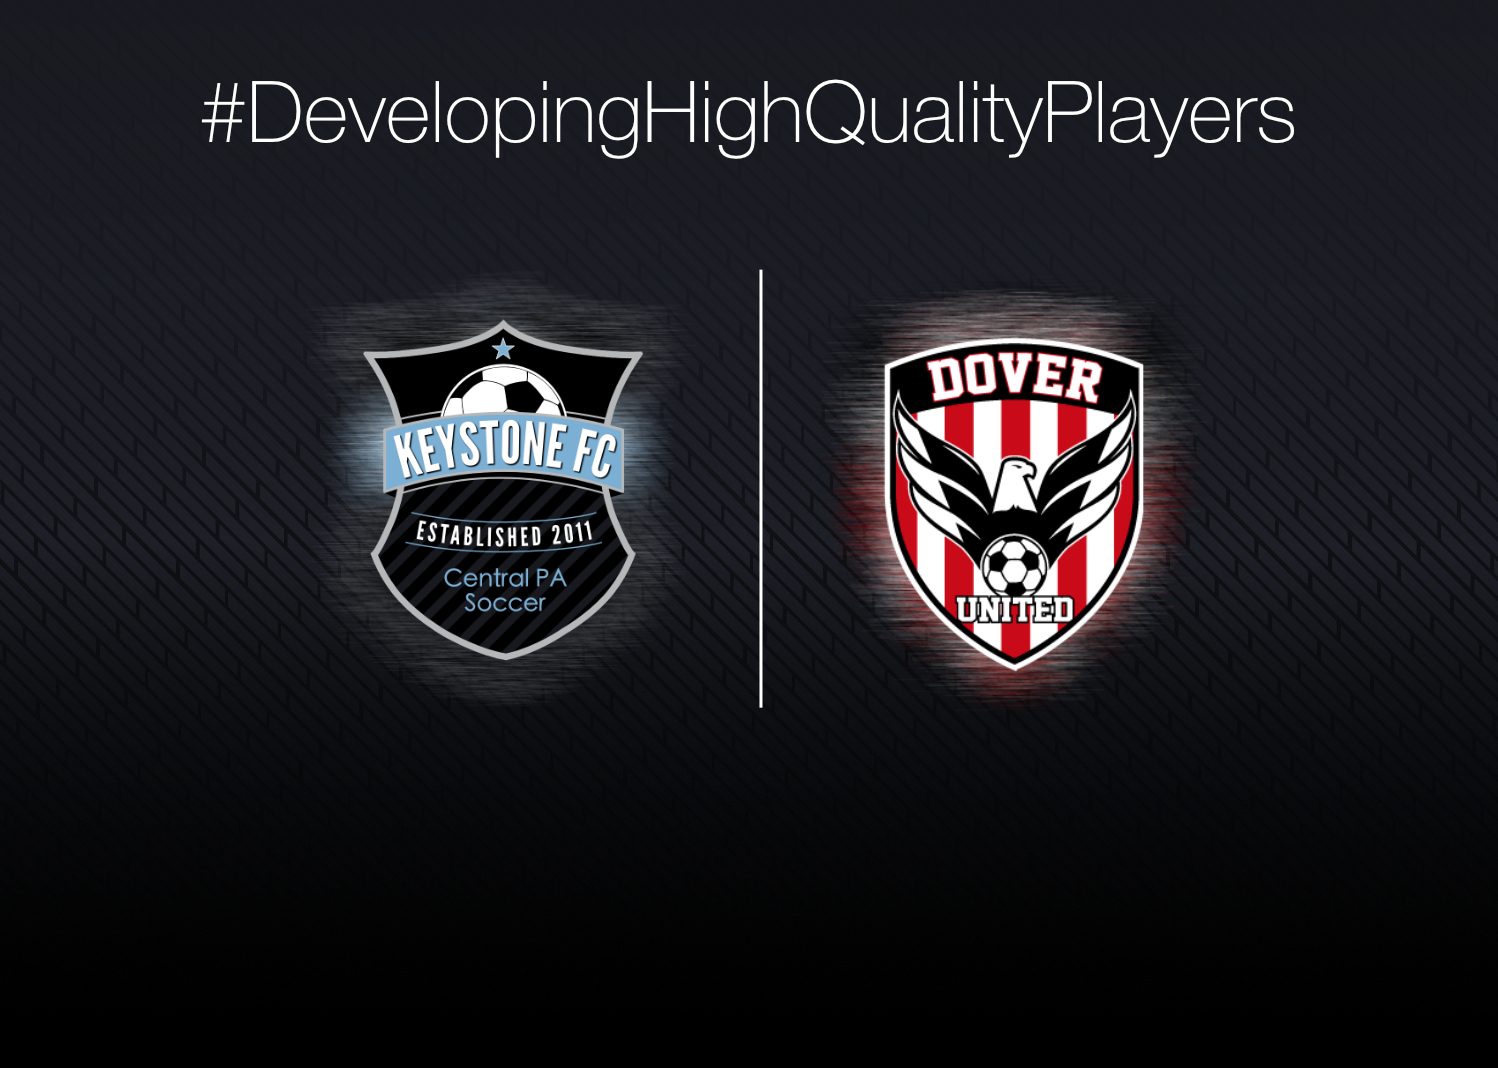 Keystone FC and Dover United Soccer Club Announce Strategic Collaboration